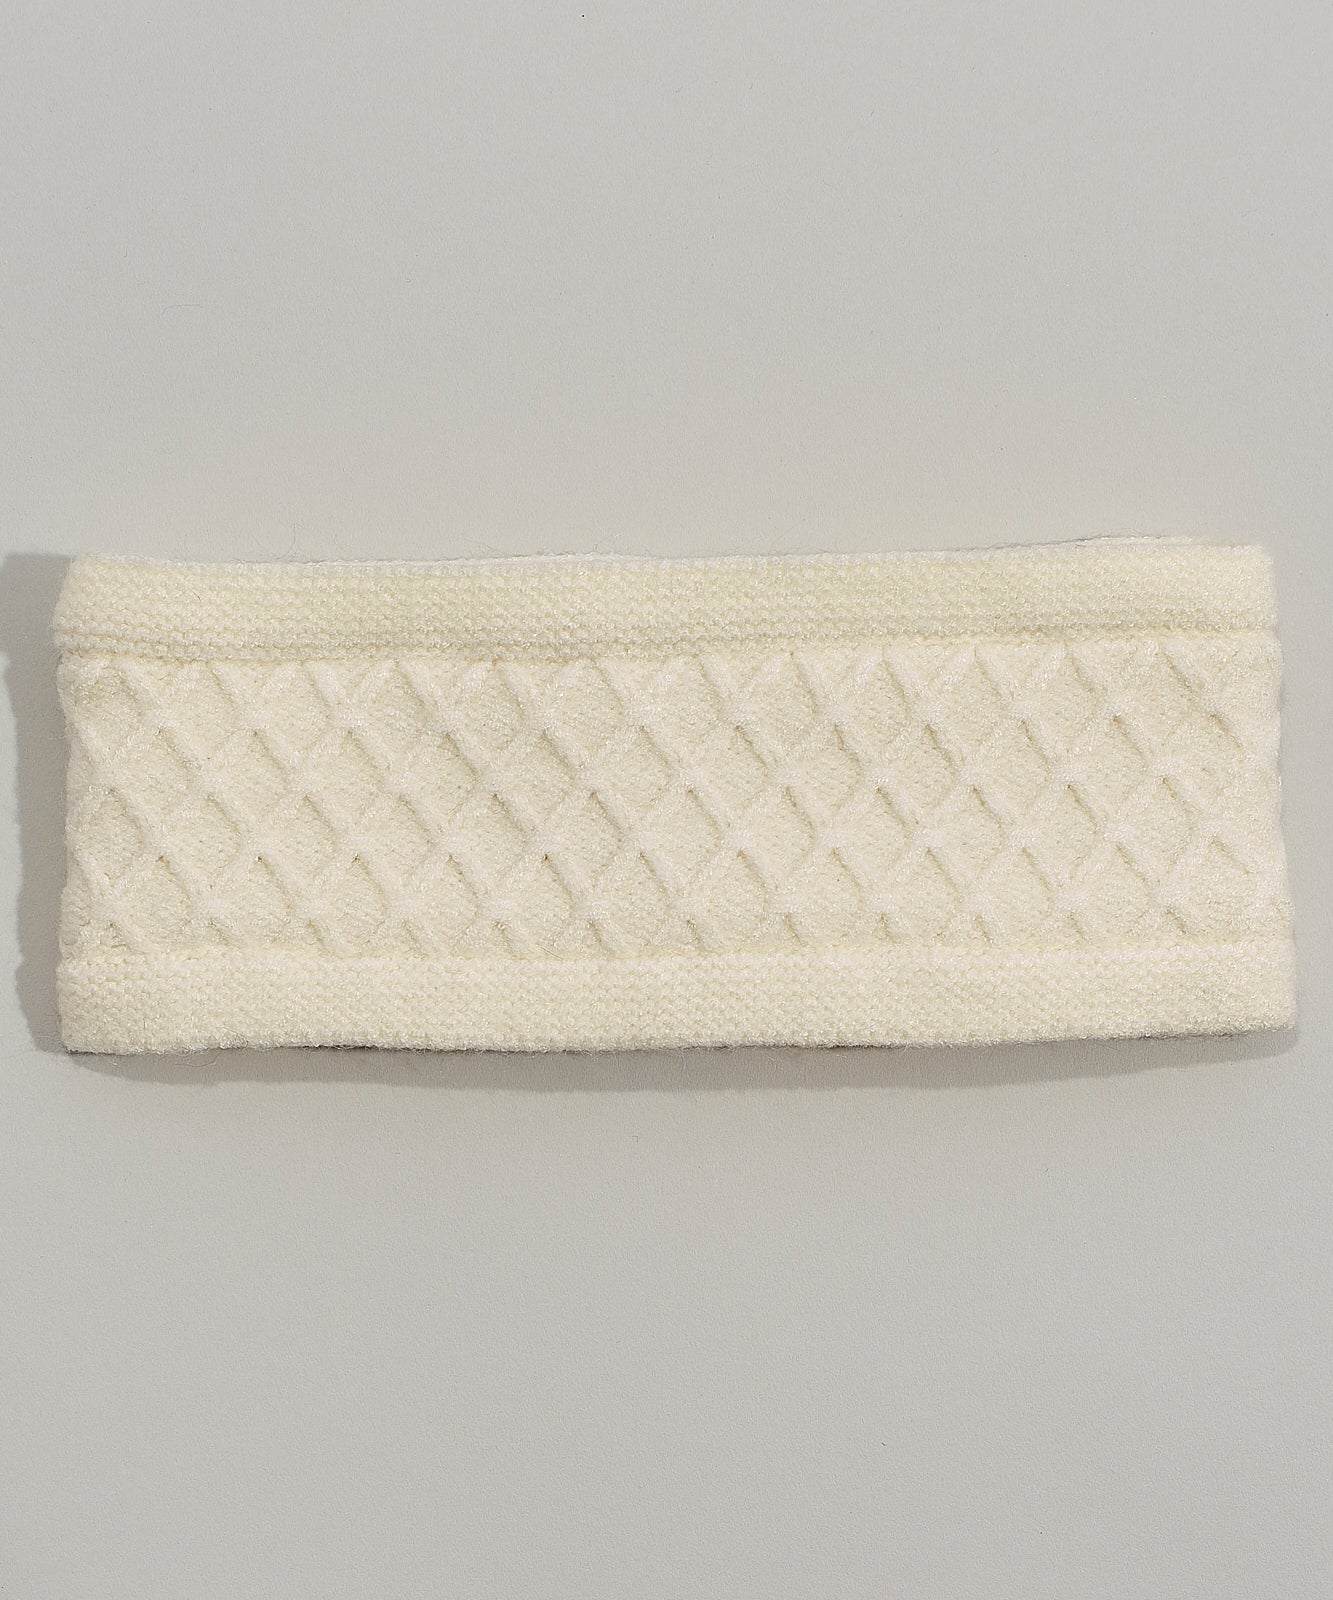 Cream - Diamond Cable Headband